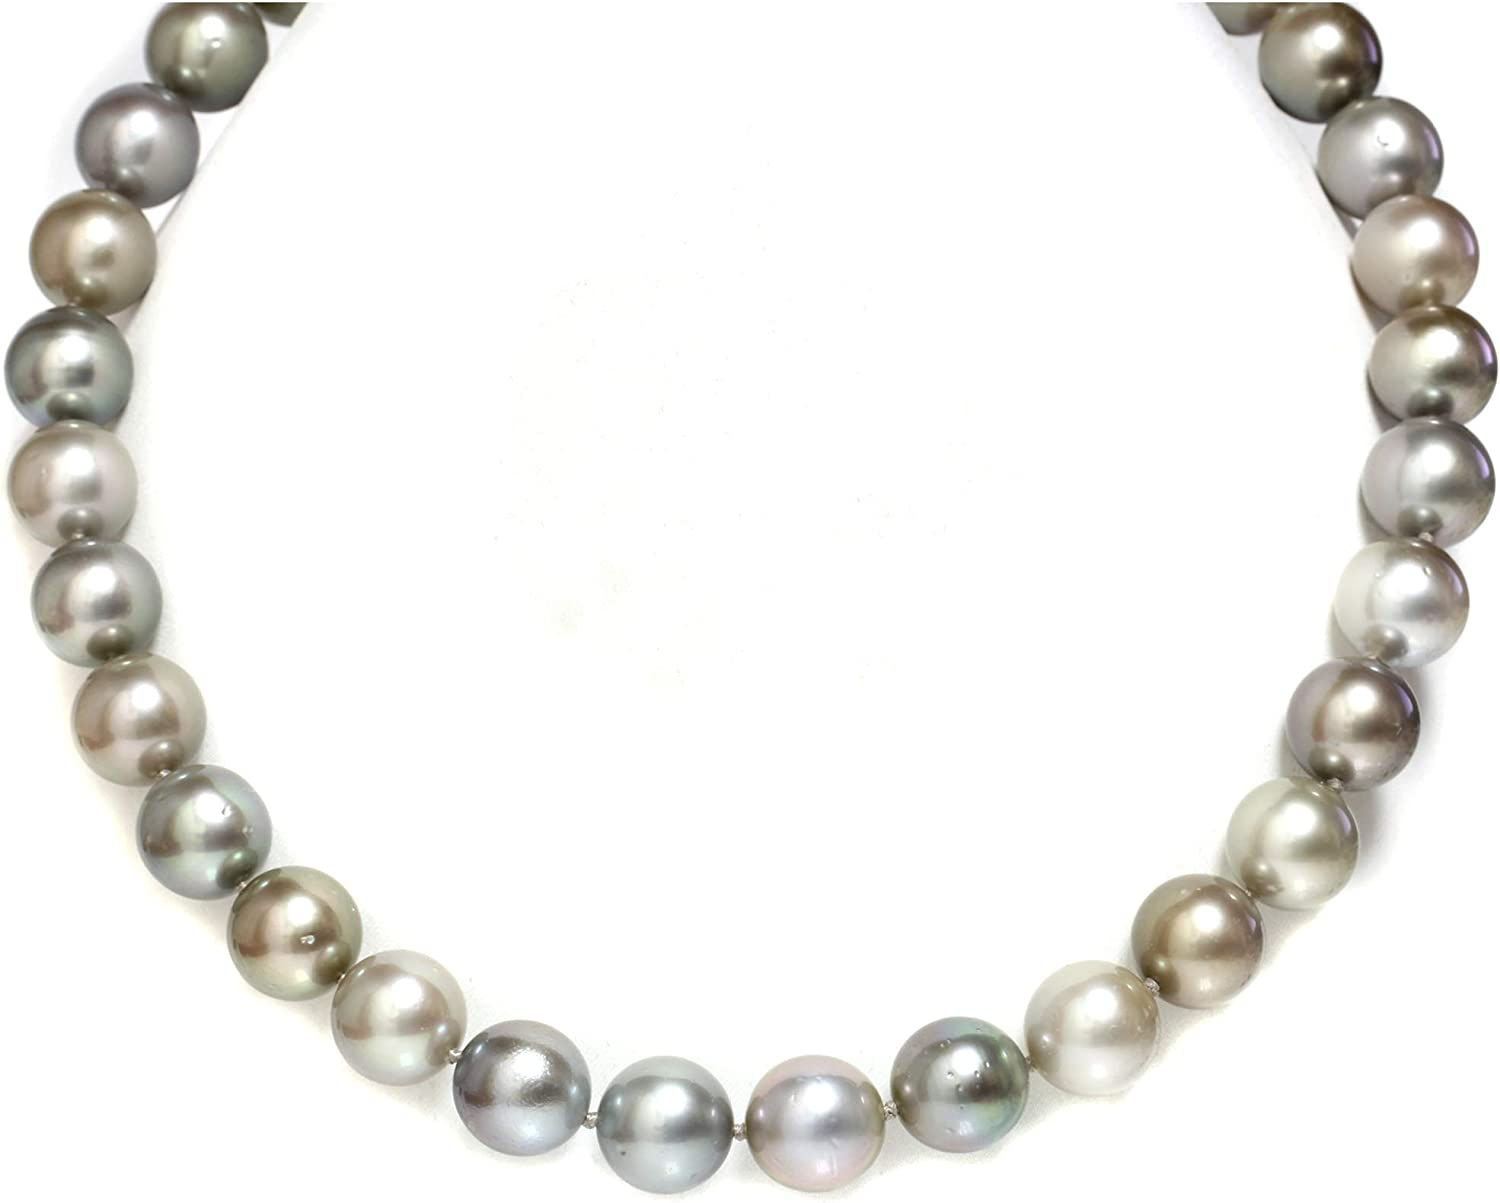 Unisex Tahitian Pearl NecklaceGenuine Tahitian Pearl ChokerTahiti Pearl NecklacePearl on LeatherSurf JewelryGift For Her For HimYevga